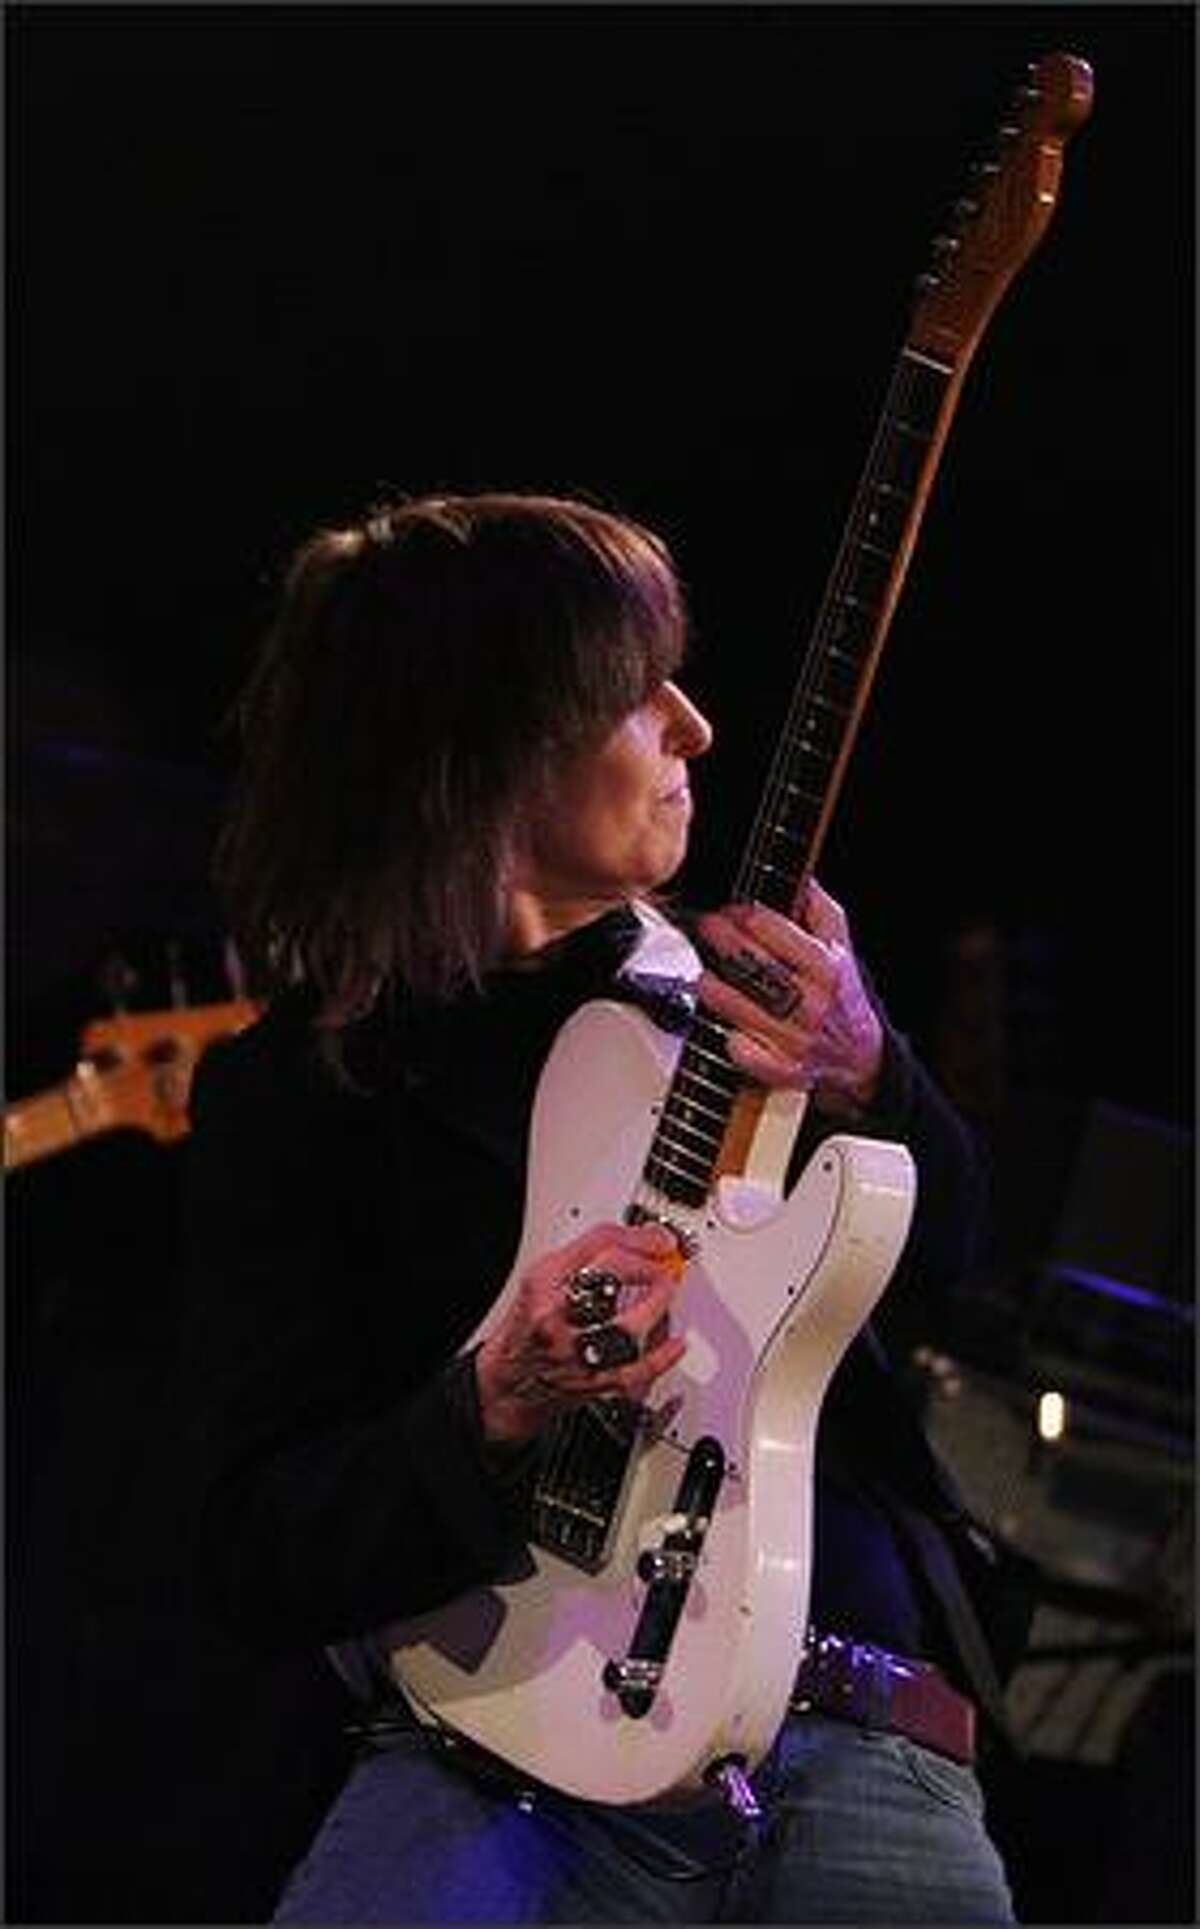 Chrissie Hynde and The Pretenders perform during the 103.7 The Mountain Winter Warmth Concert at The Paramount Theatre on Saturday.